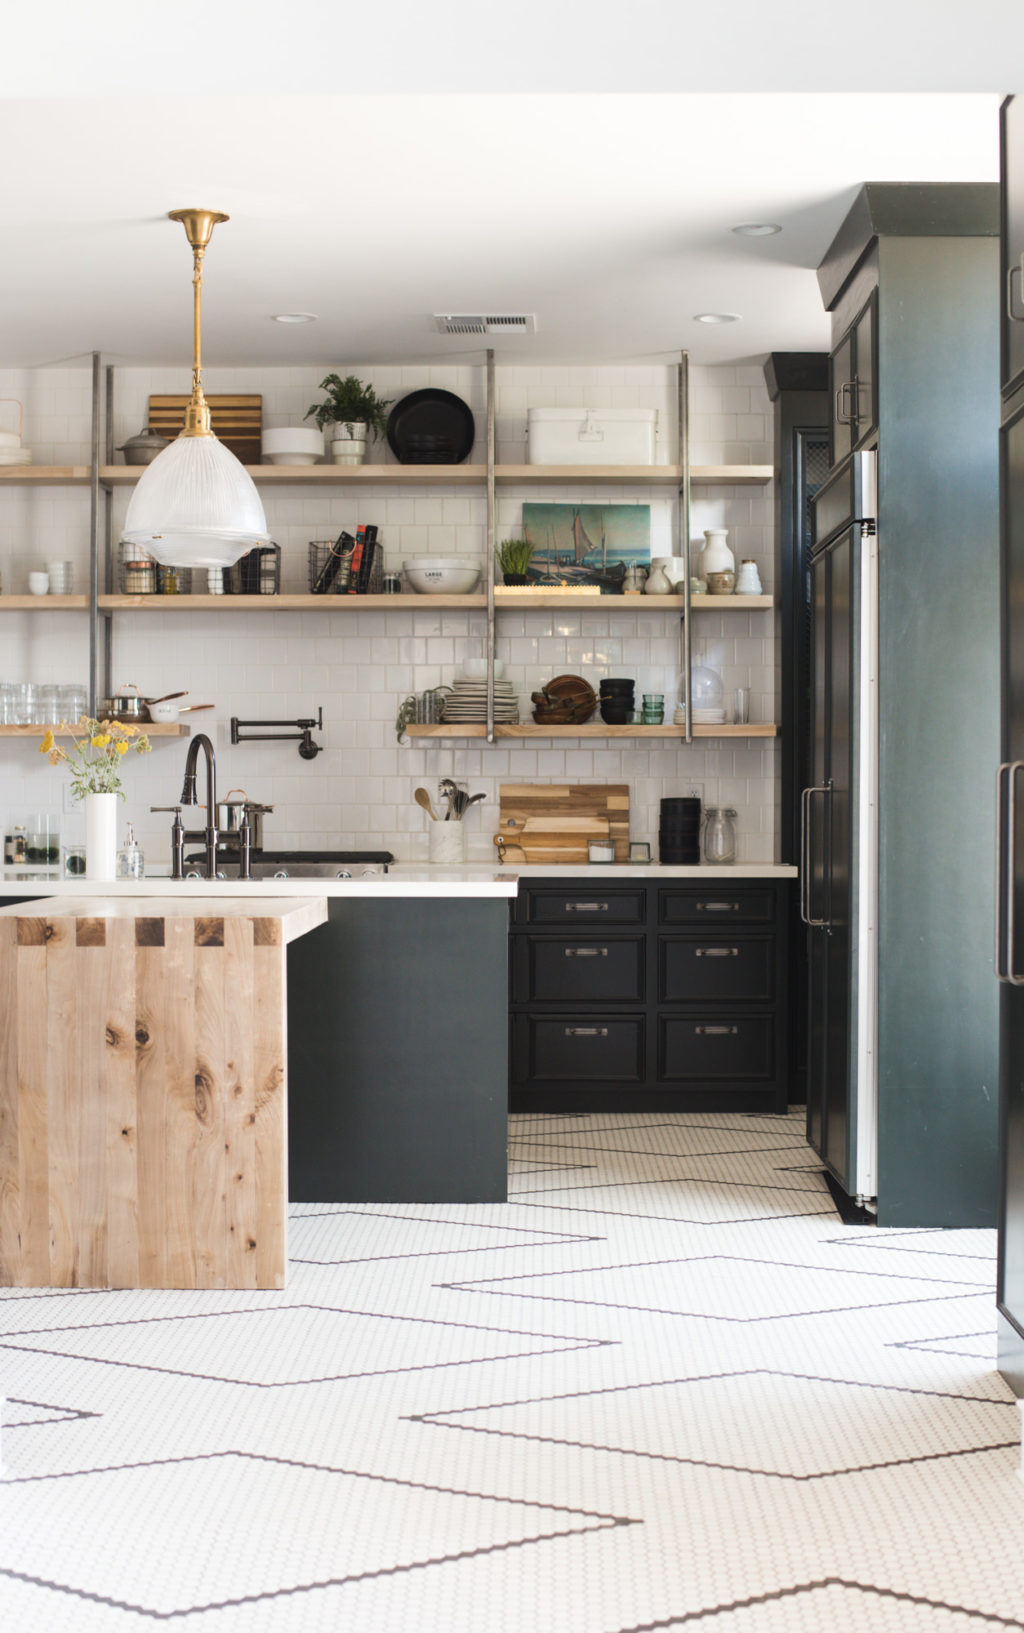 Dark green kitchen cabinets and hand laid black and white tile flooring (it's a DIY with a tutorial!!) are the star of this renovated kitchen. The bleached walnut island and open shelving fill the space with warmth. #kitchen #vintage #renovation #whitetile #openshelving